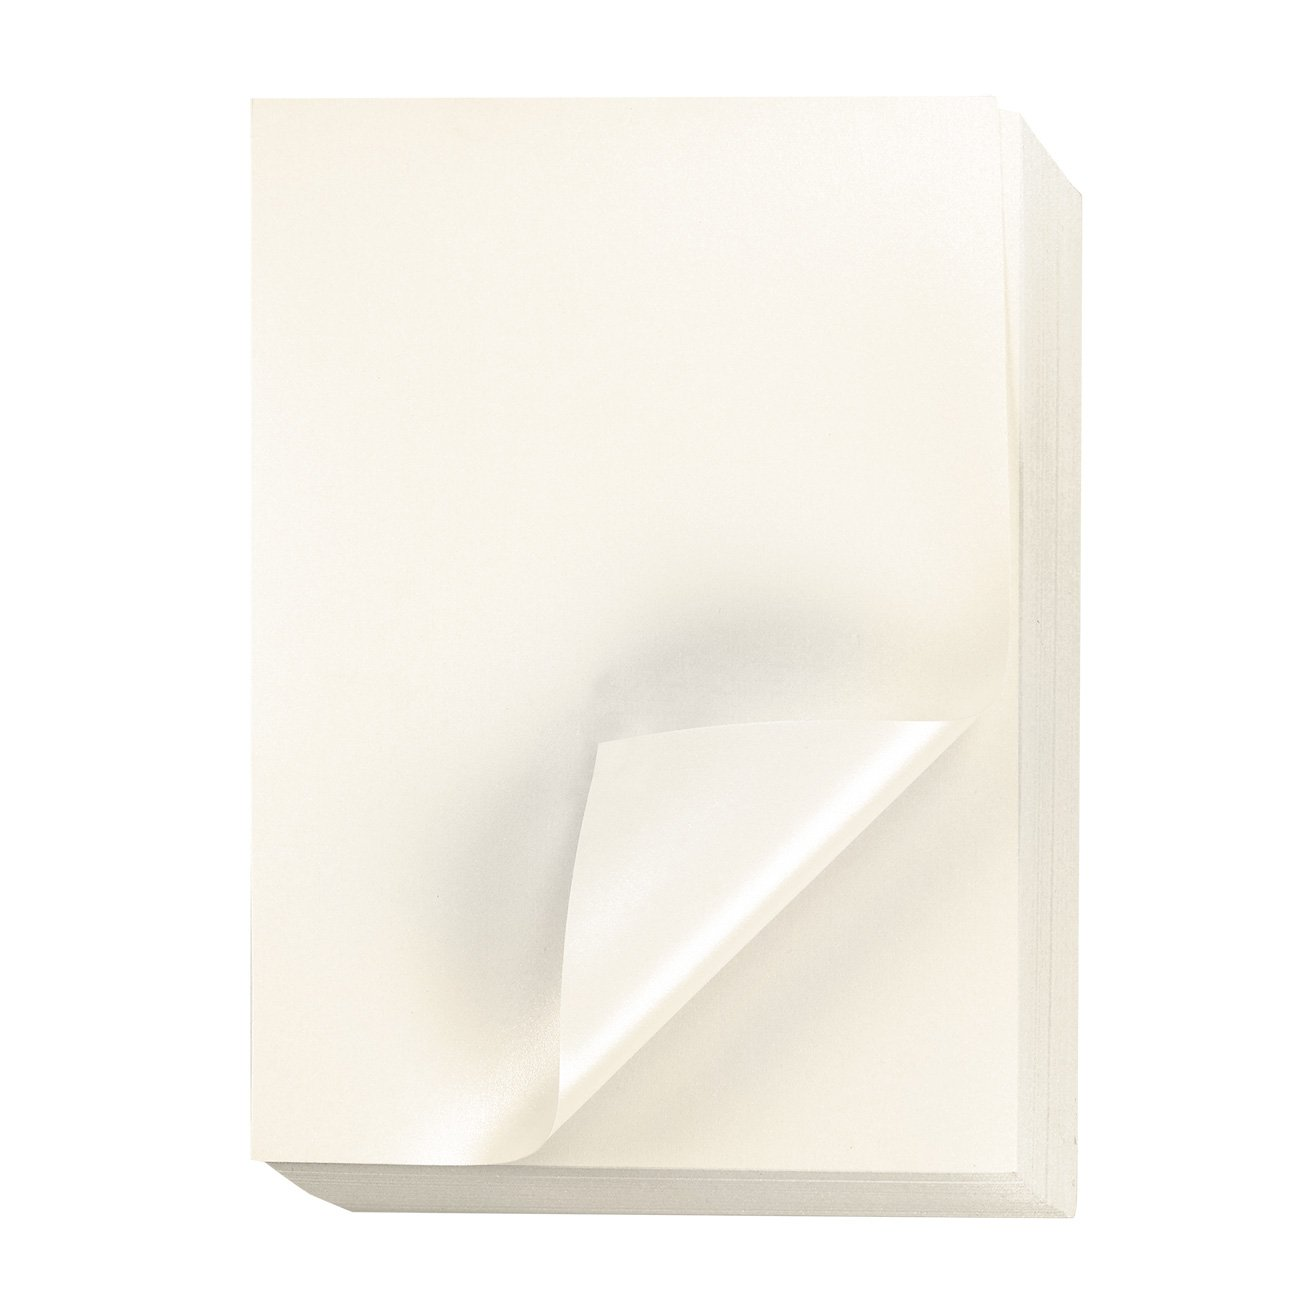 Ivory Metallic Paper - 96-Pack Shimmer Papers, Double Sided, Laser Printer Compatible, Perfect for Weddings, Baby Showers, Birthdays, Craft Use, 8.5 x 11 Inches by Best Paper Greetings